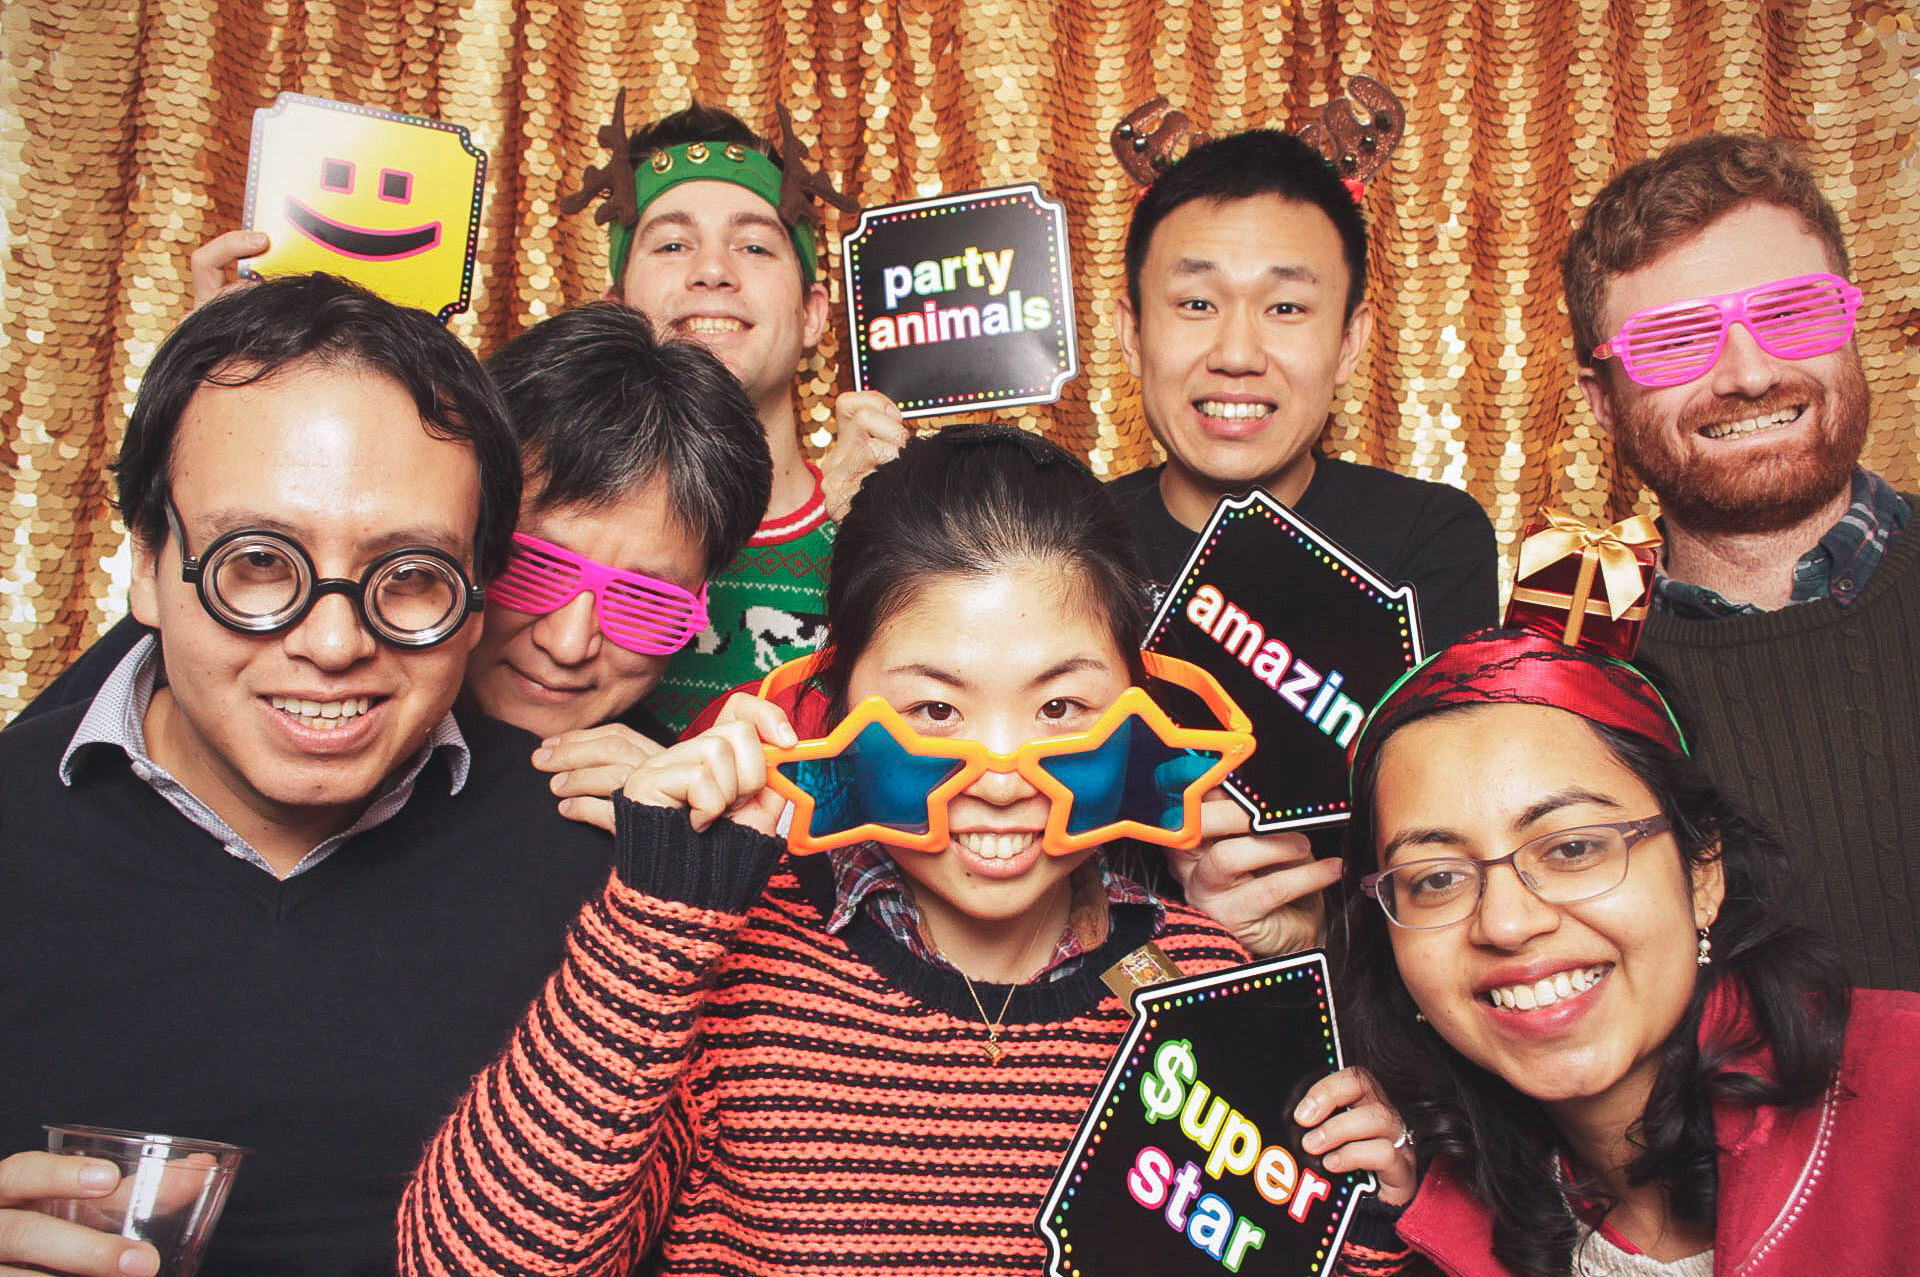 seattle-photo-booth-26.jpg#asset:1280